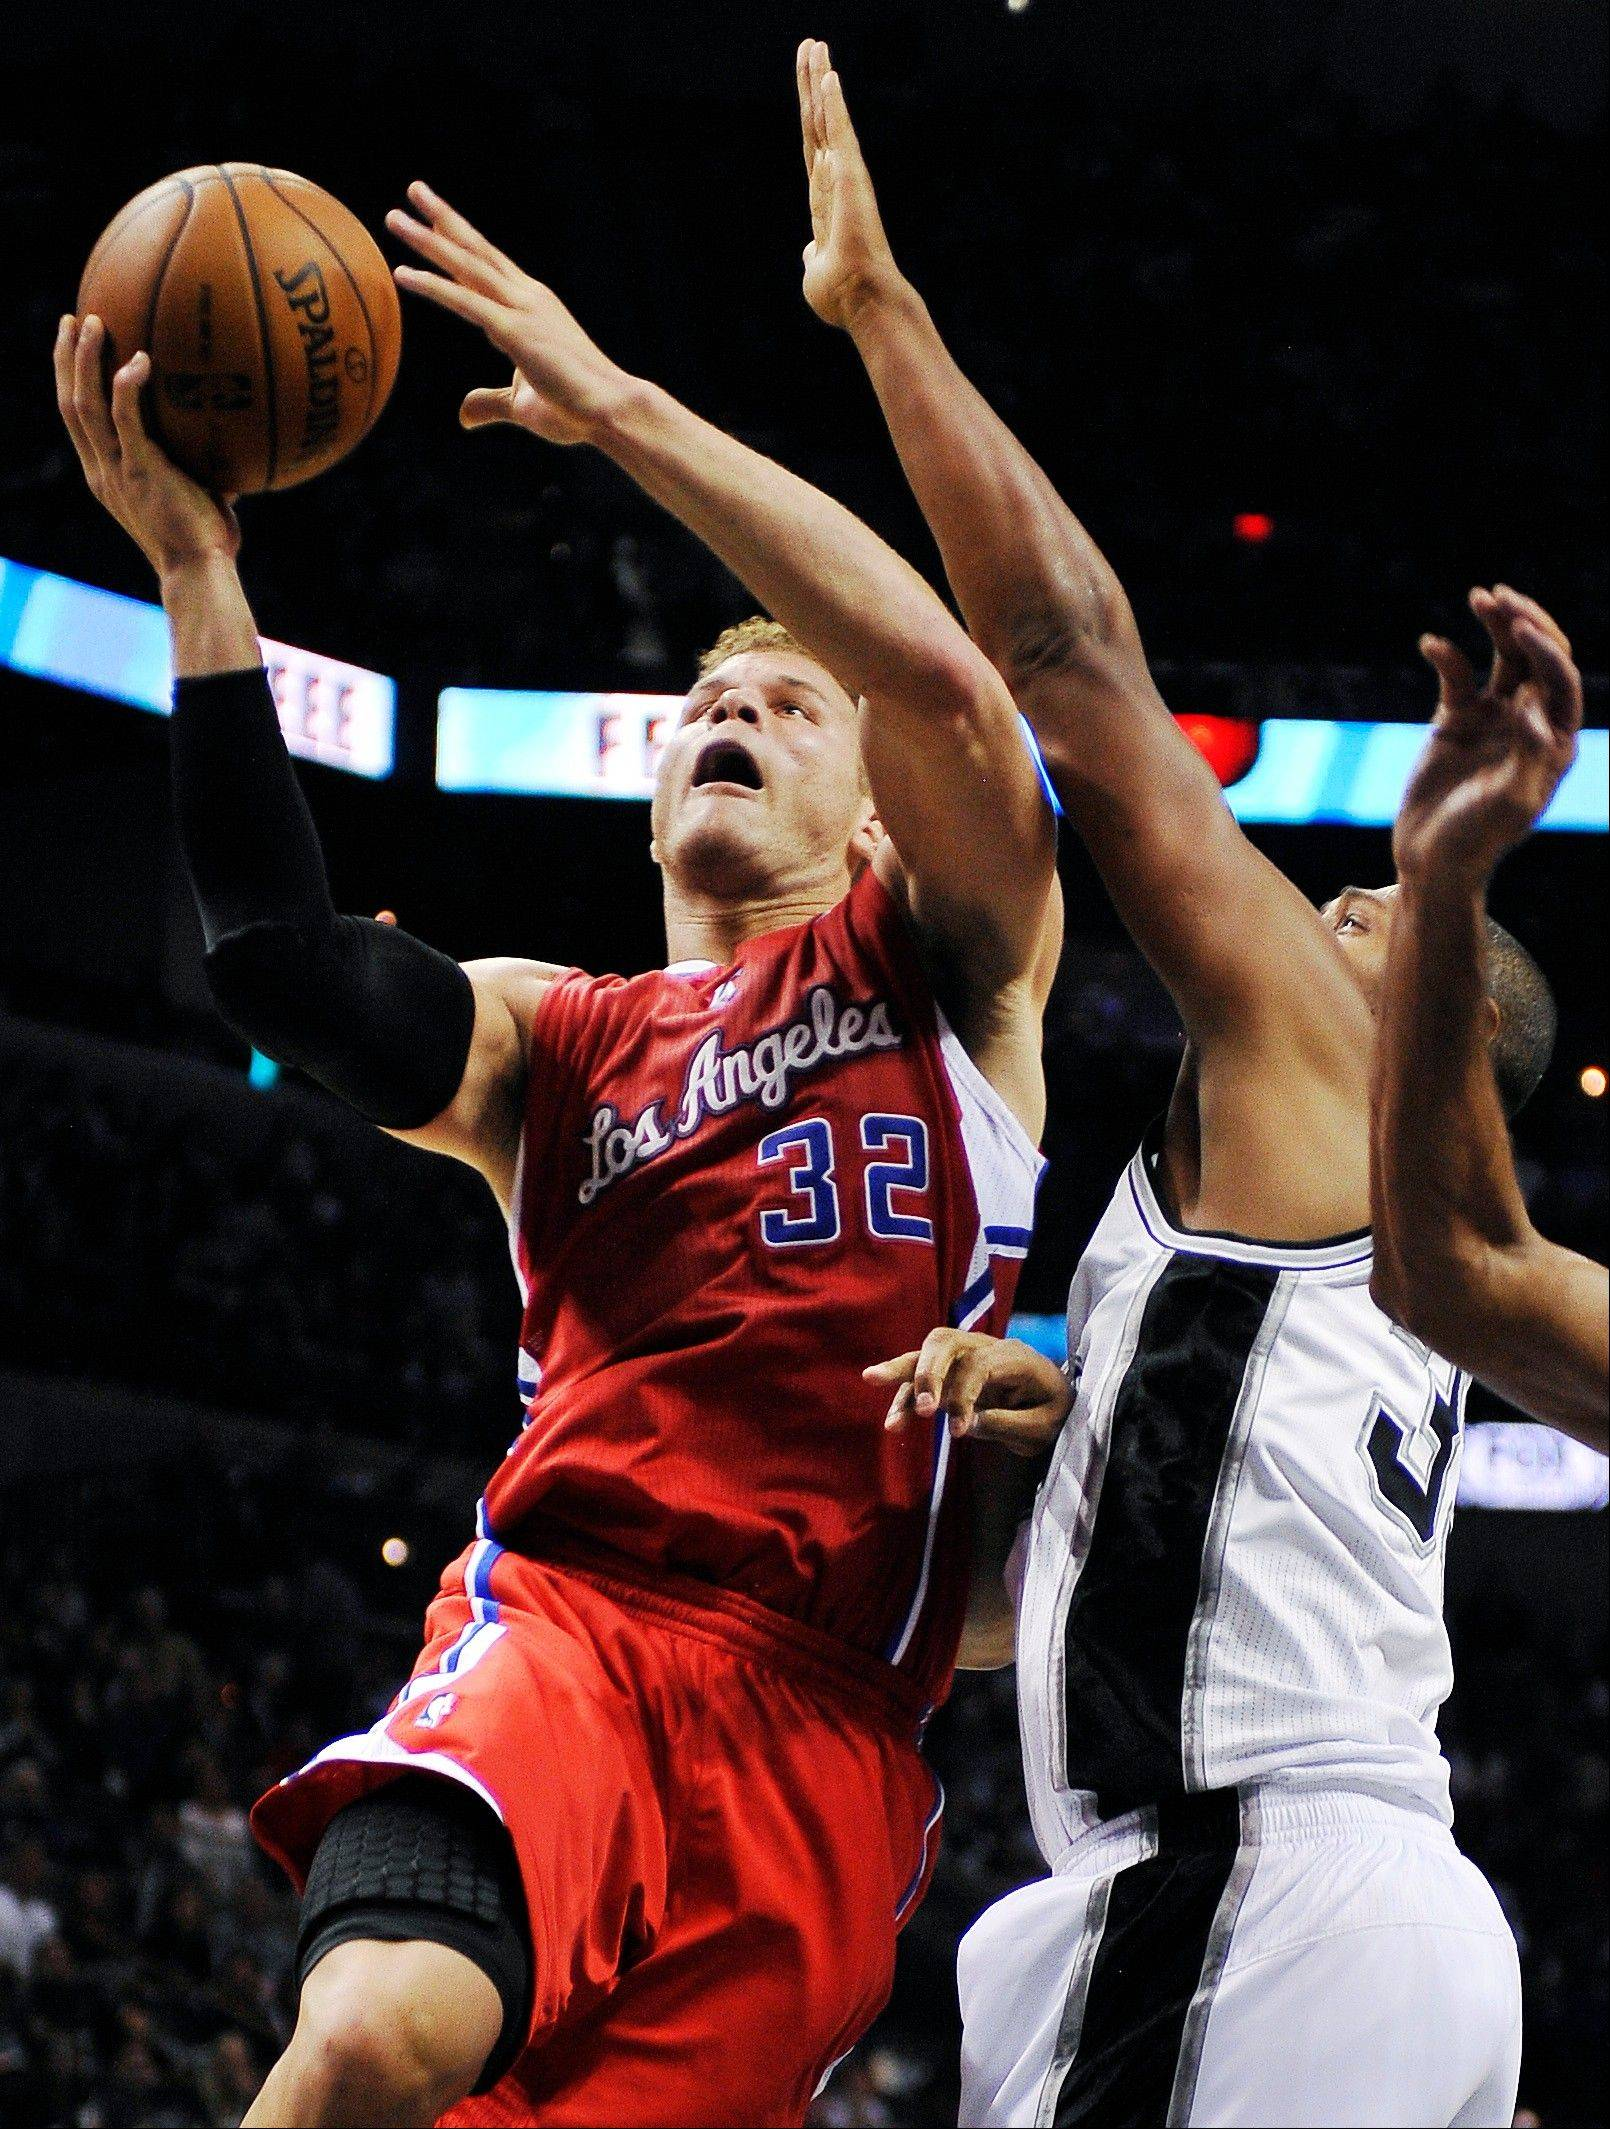 Blake Griffin and the Los Angeles Clippers are Mike McGraw's top team in the NBA so far this season.